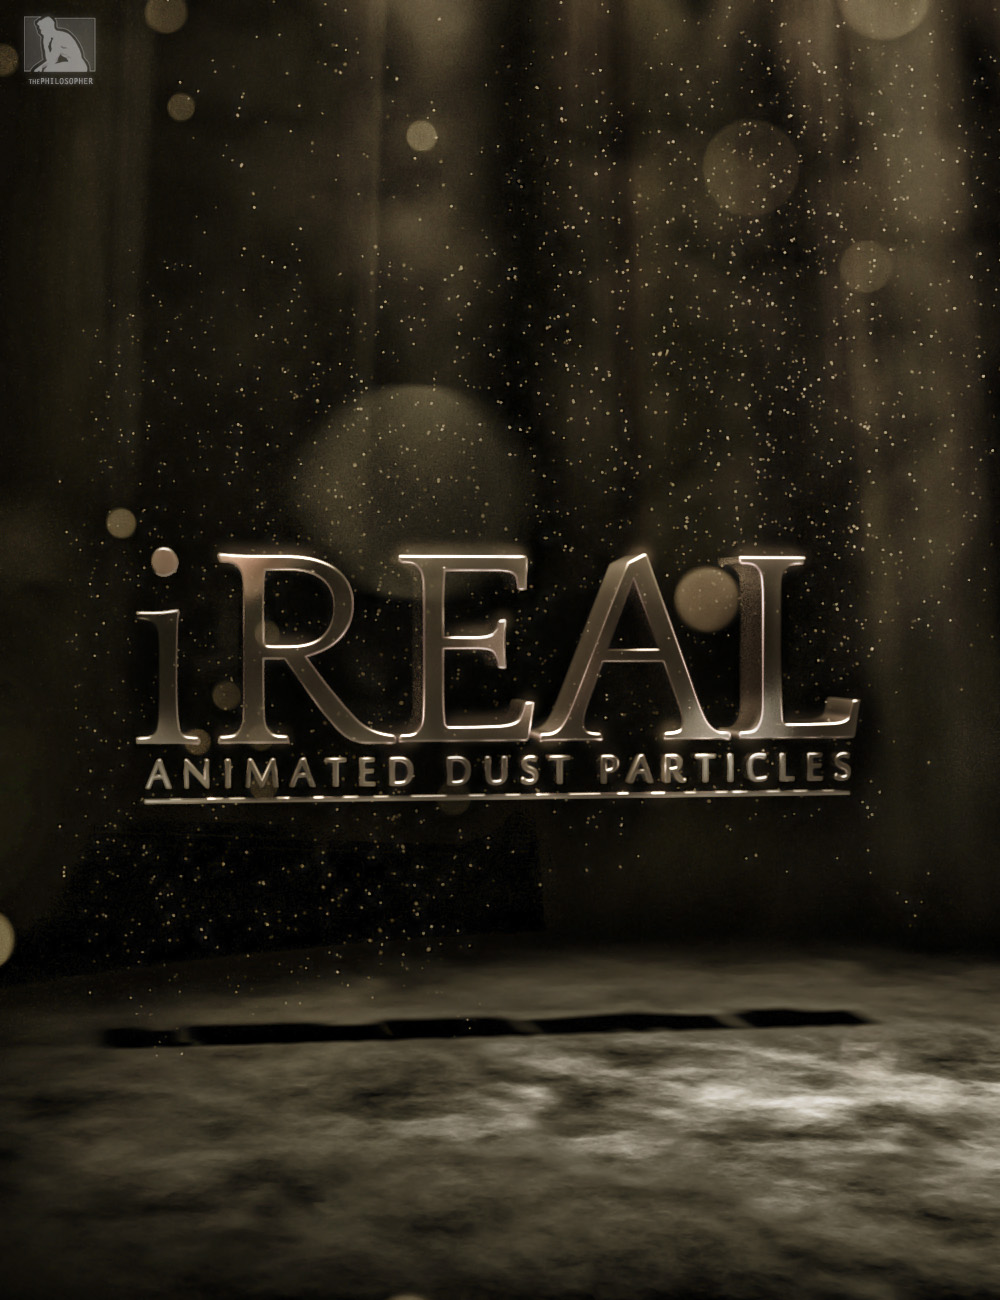 iREAL Animated Dust Particles & Bokeh by: ThePhilosopher, 3D Models by Daz 3D